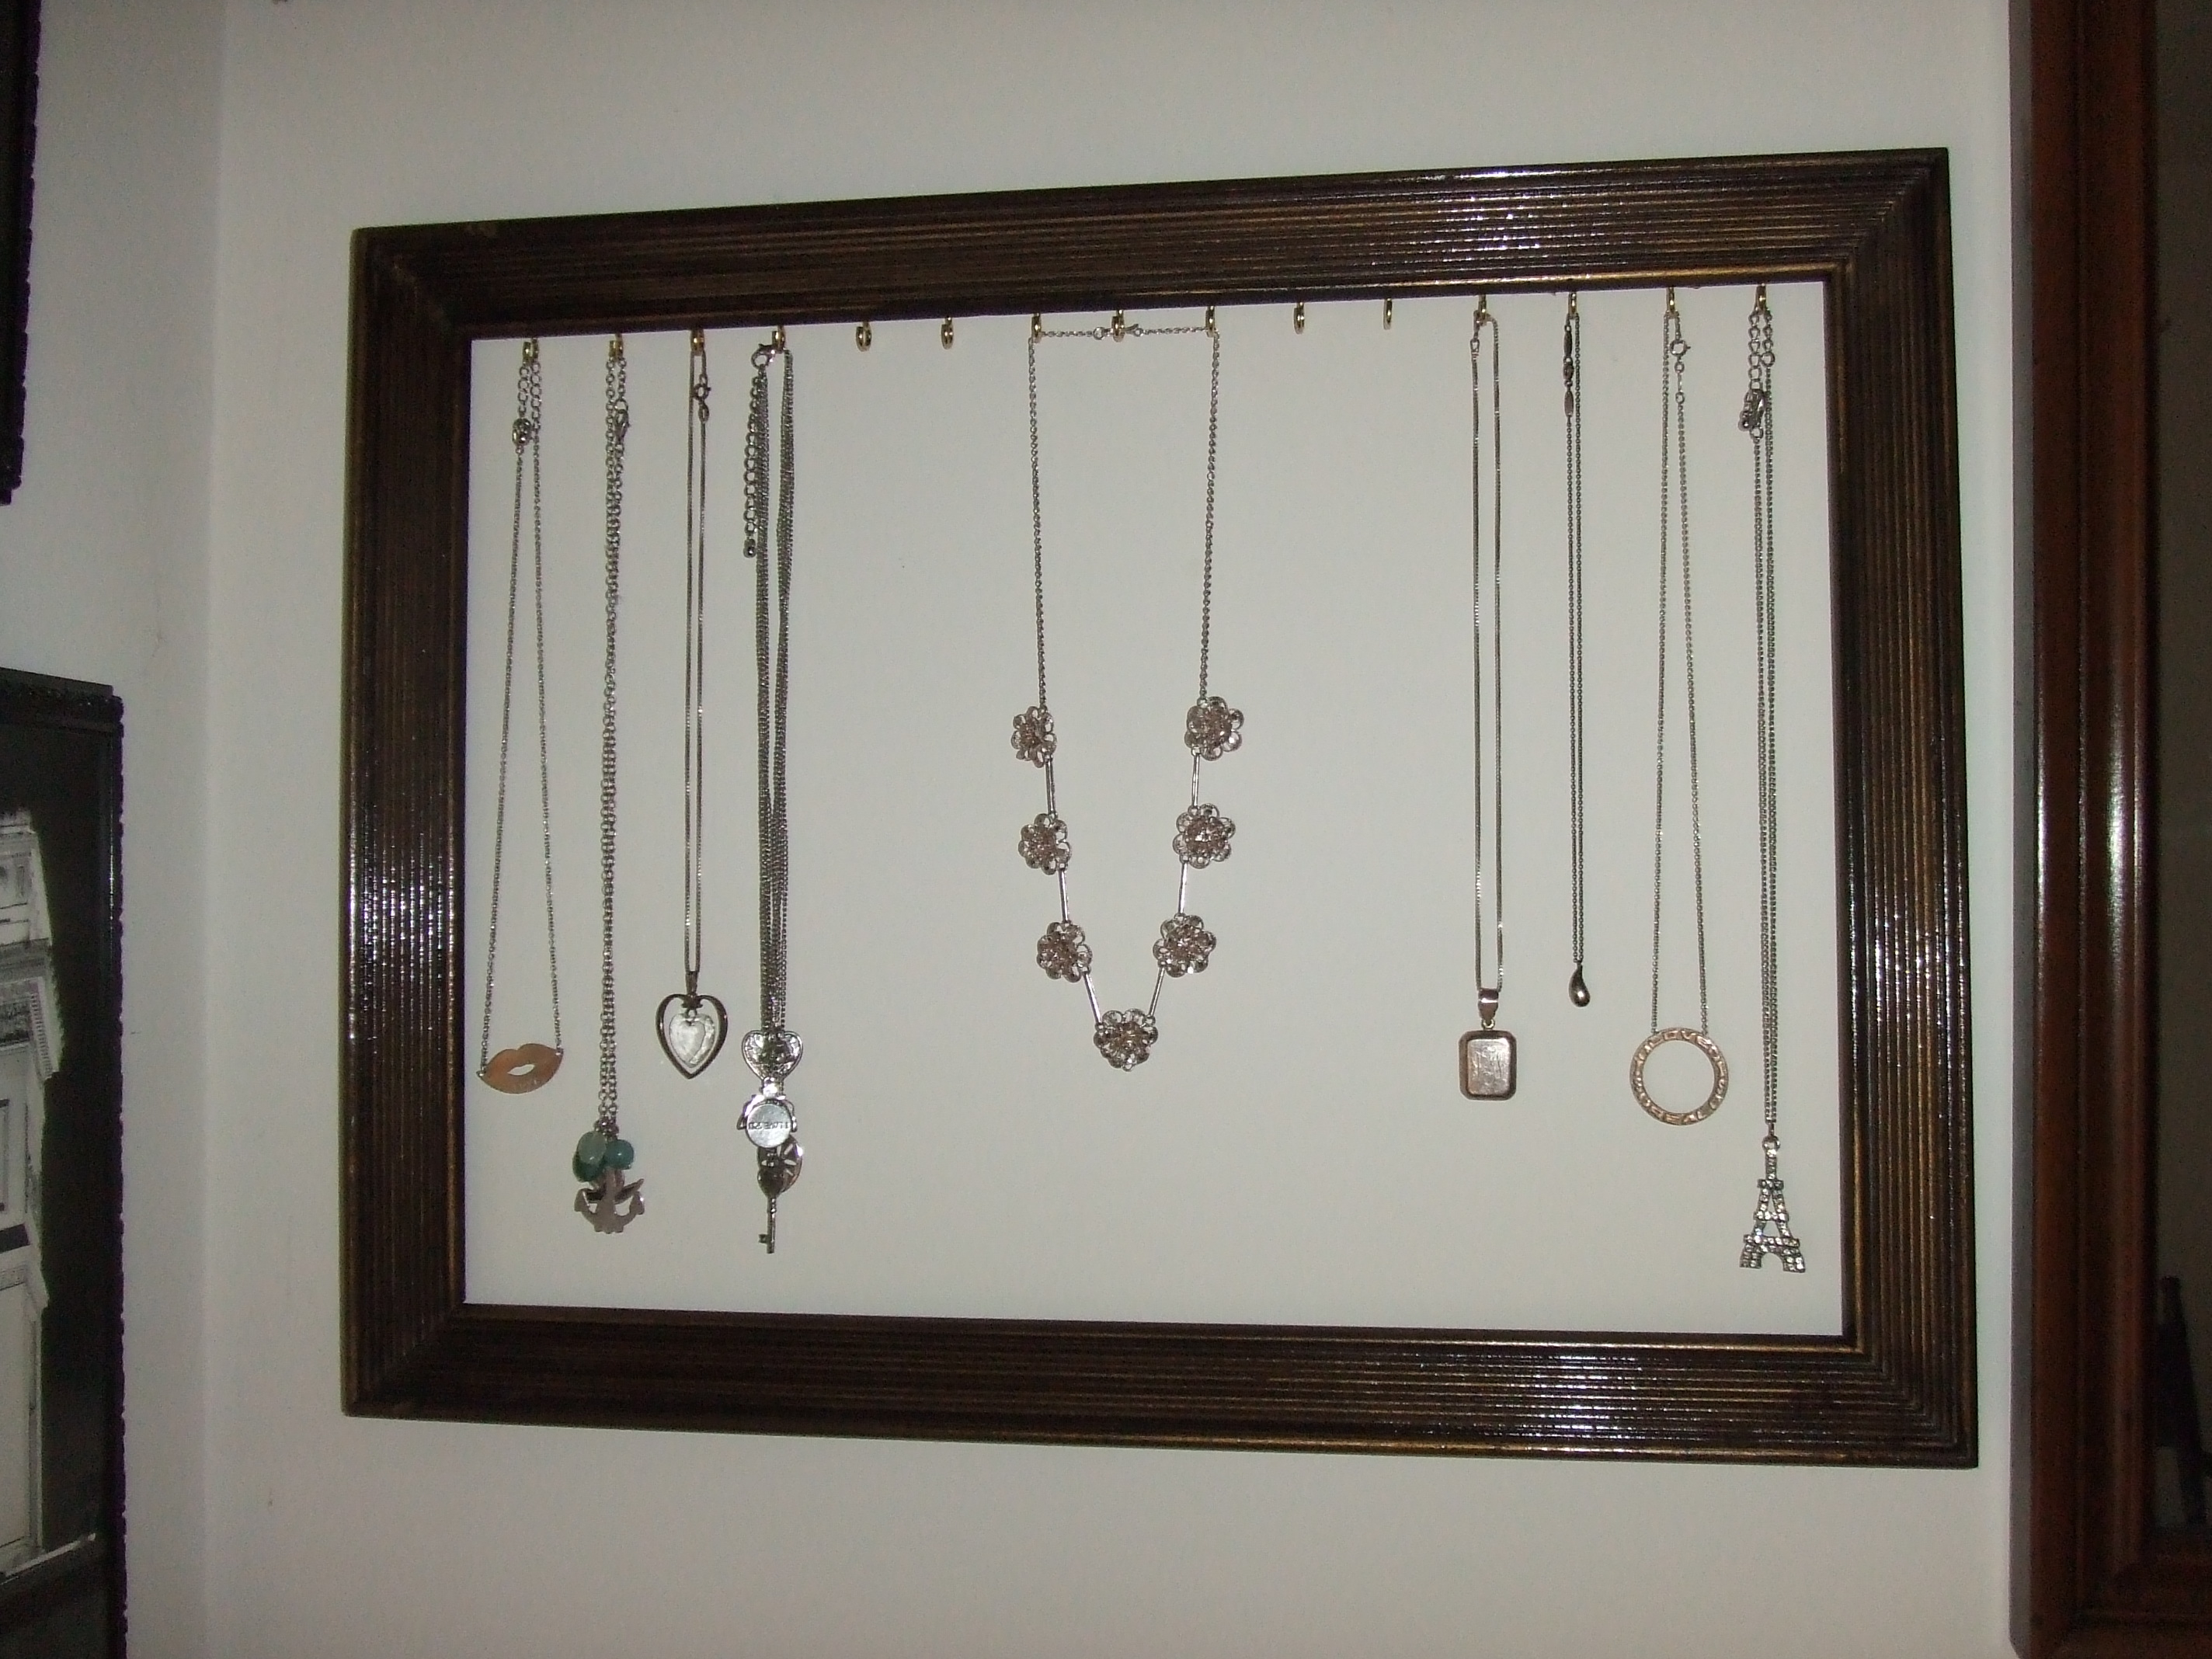 Diy Necklace Holder Diy Necklace Holder Display The Daily Varnish Extra